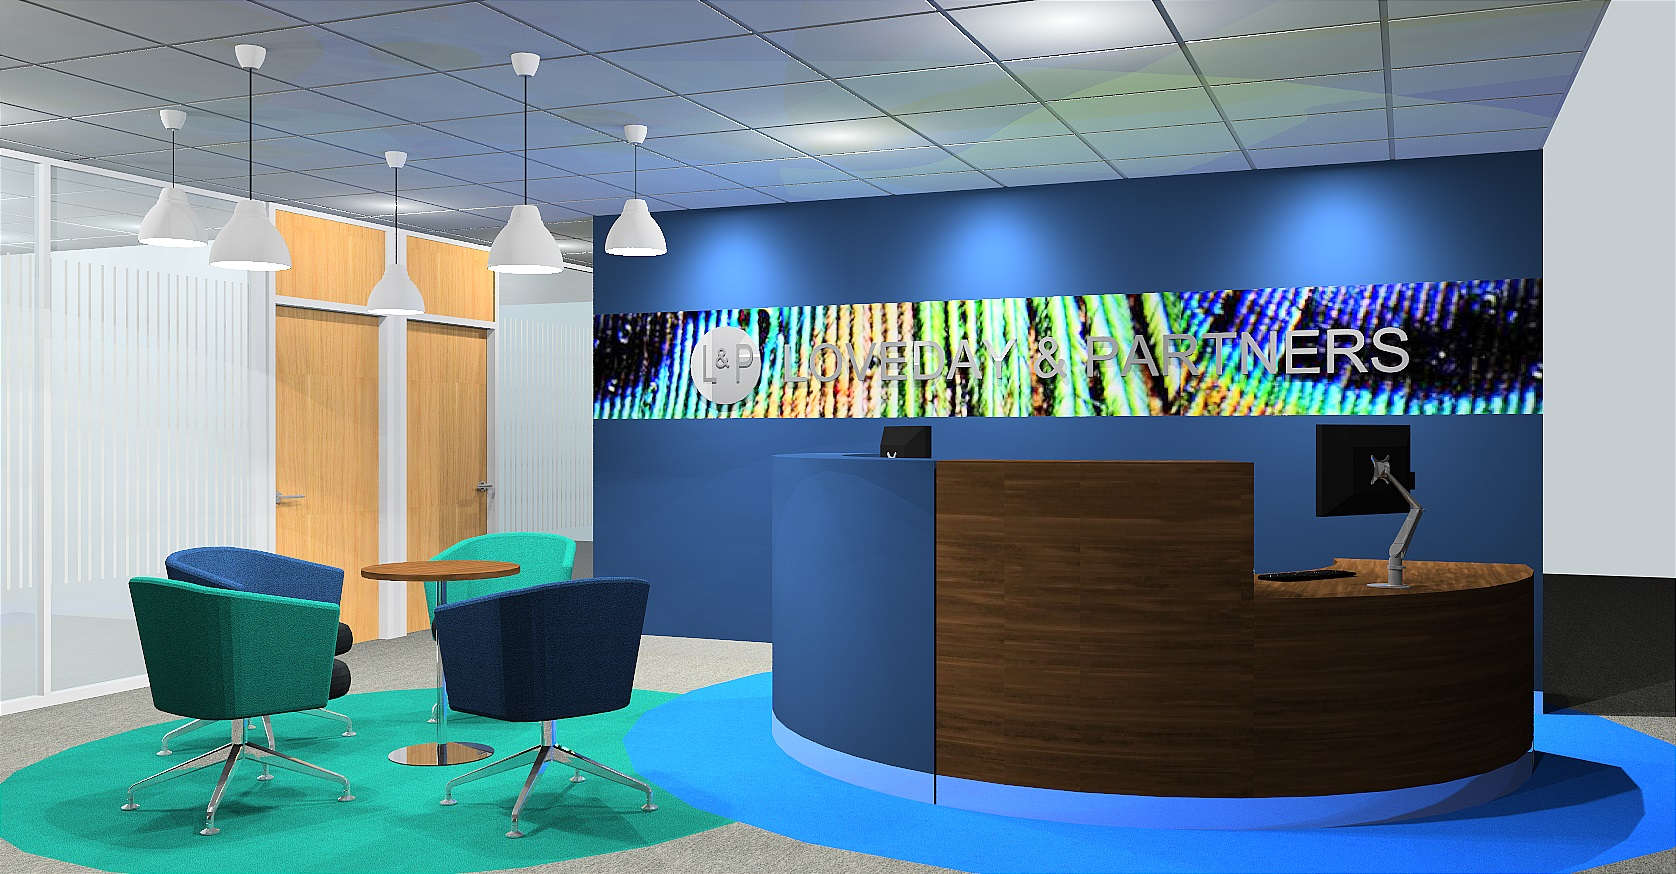 Loveday reception office design render